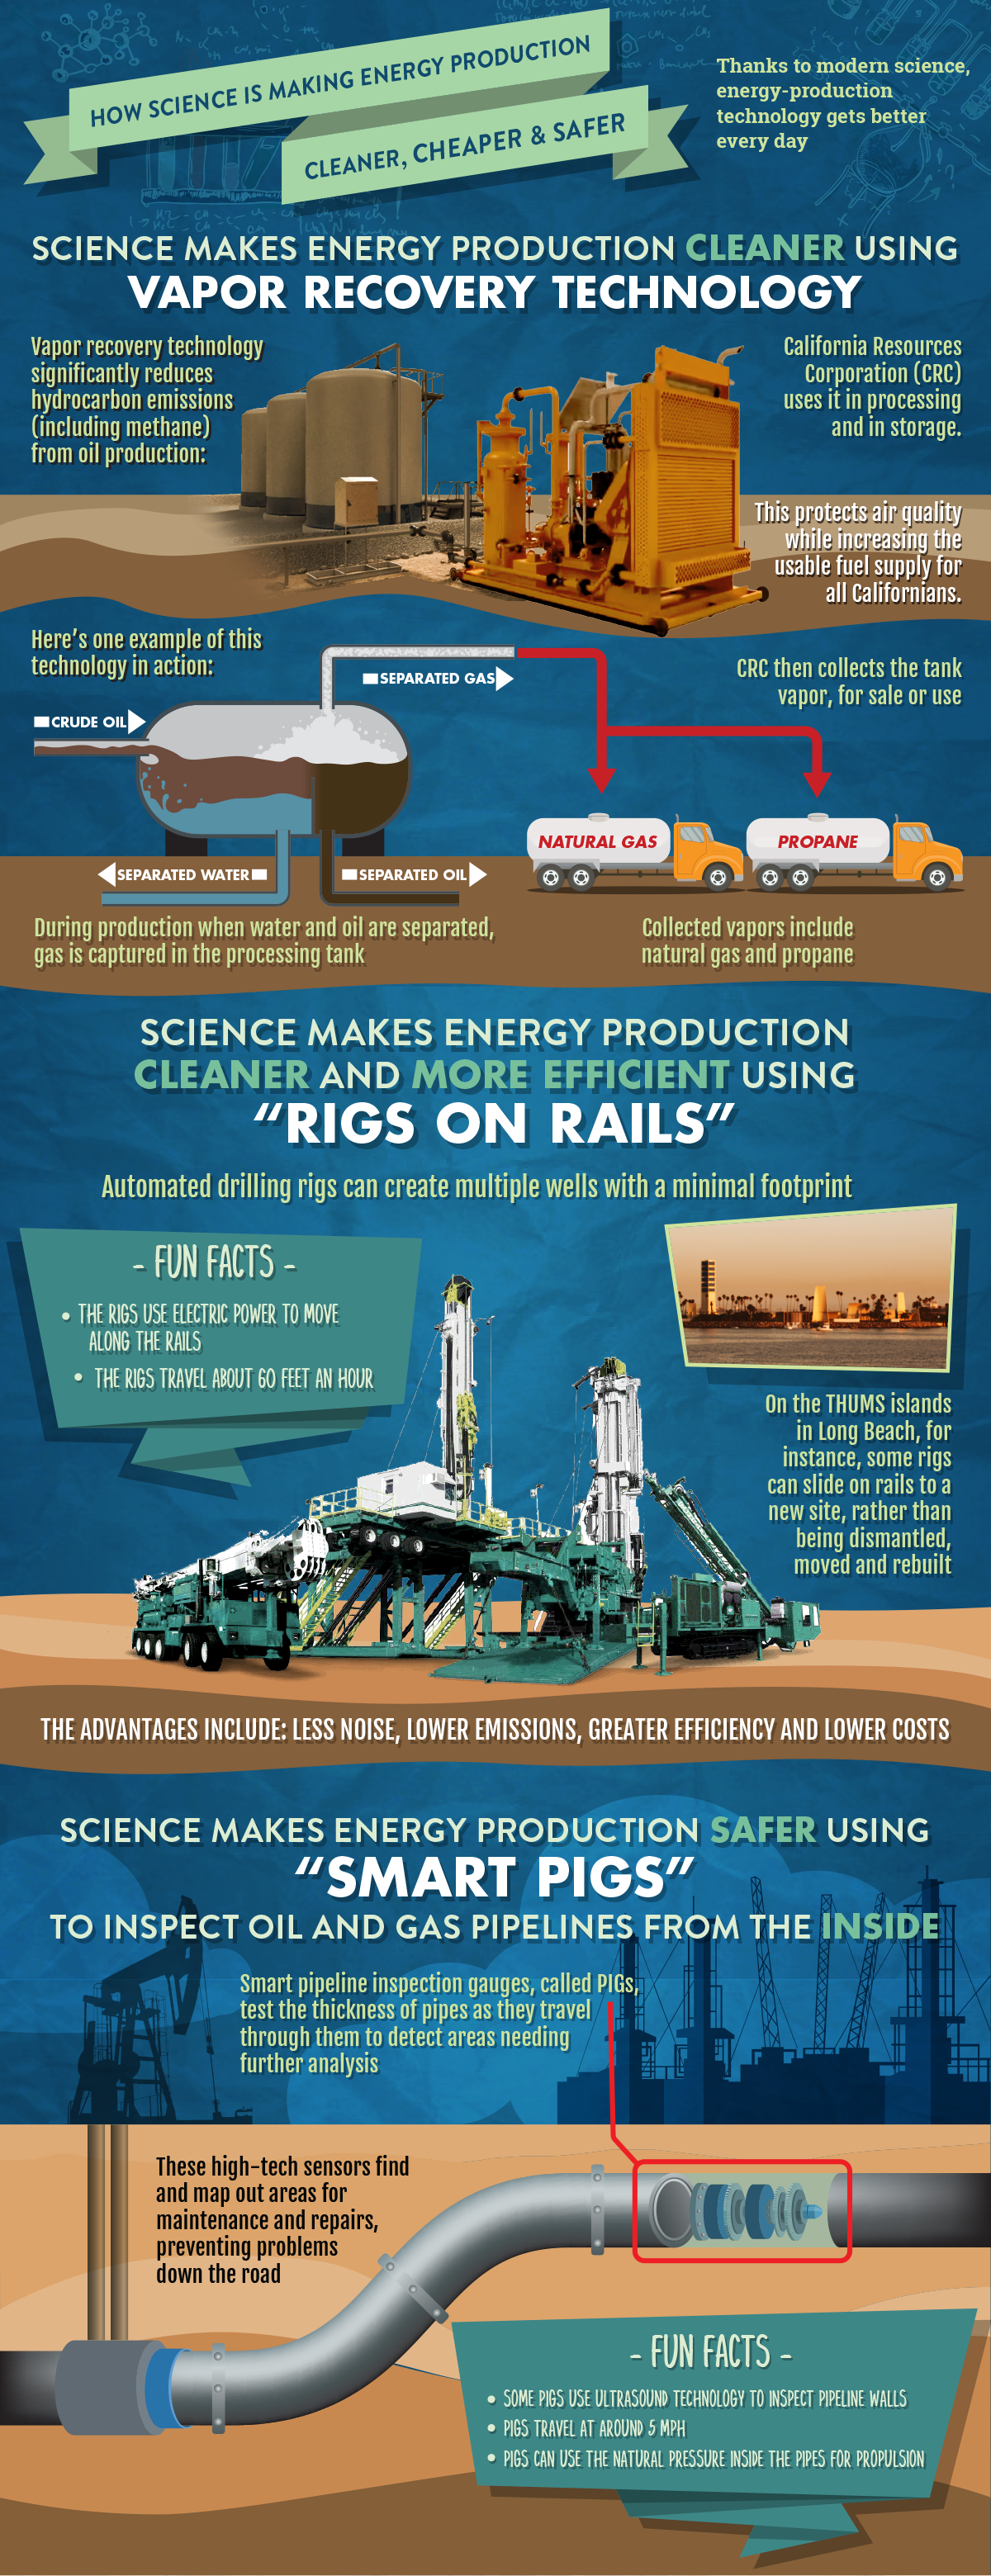 Amazing technologies like vapor recovery, smart pigs and rigs on rails are making it easier for us to create energy every day.